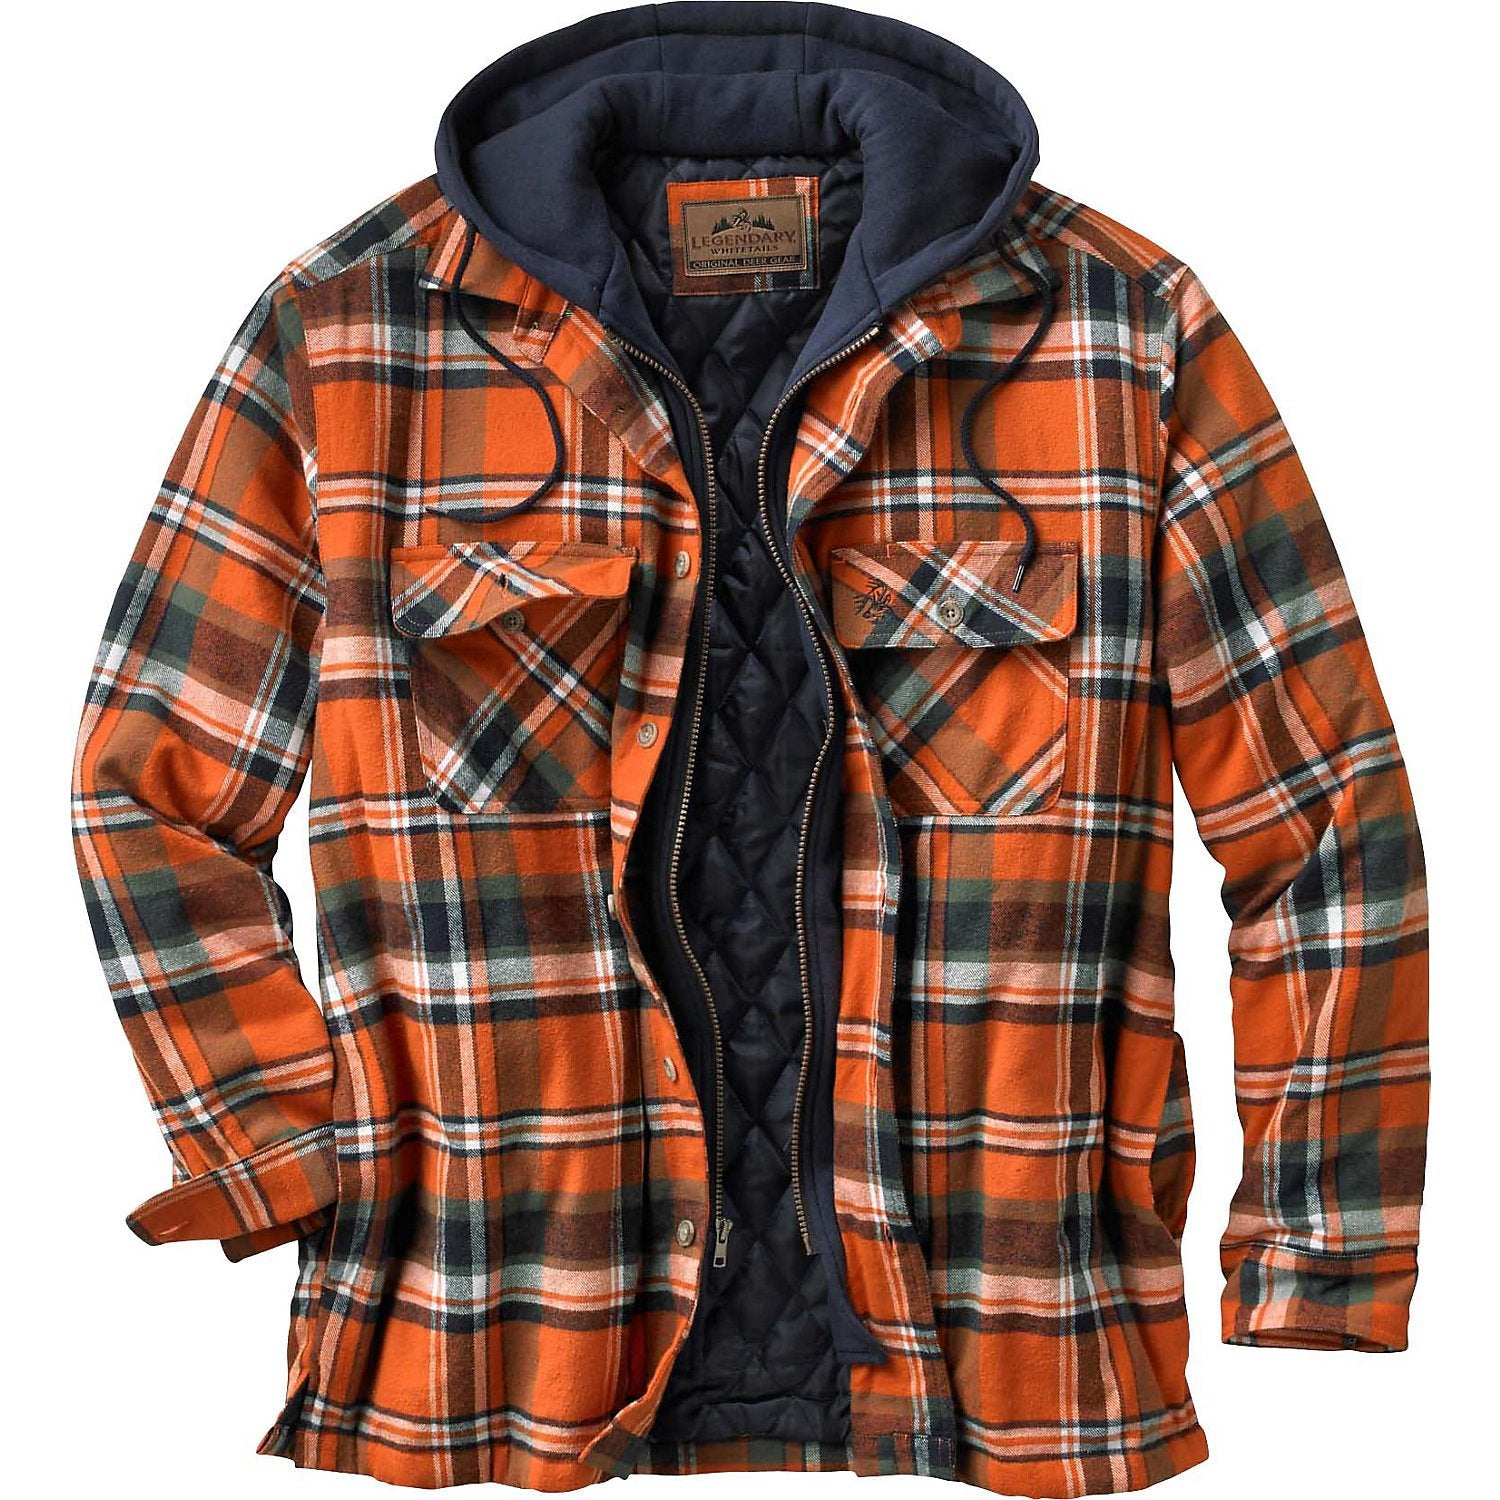 Legendary Whitetails Maplewood Hooded Shirt Jacket, 4 Colors To Choose From